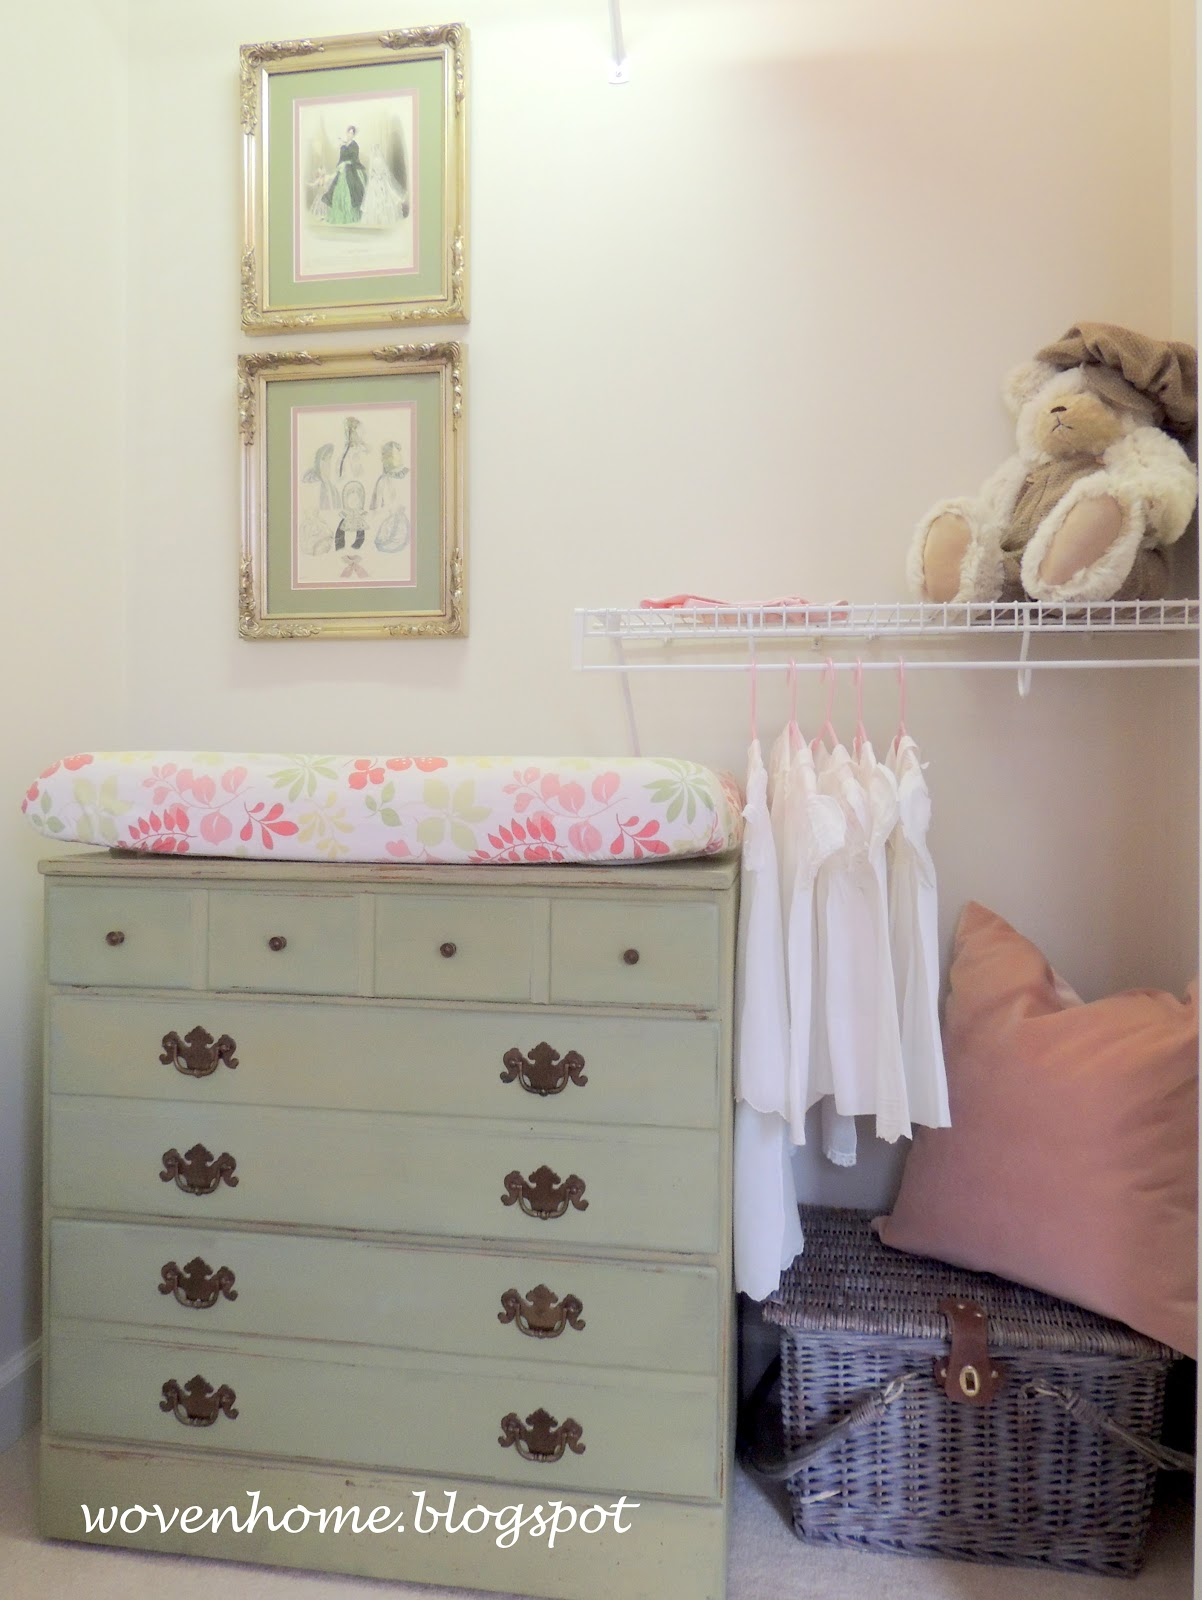 I Tackled A Few More Painting Projects To Complete The Nursery Closet  Including This Dresser Turned Changing Table, And Whitewashing This Old  Picnic Basket.